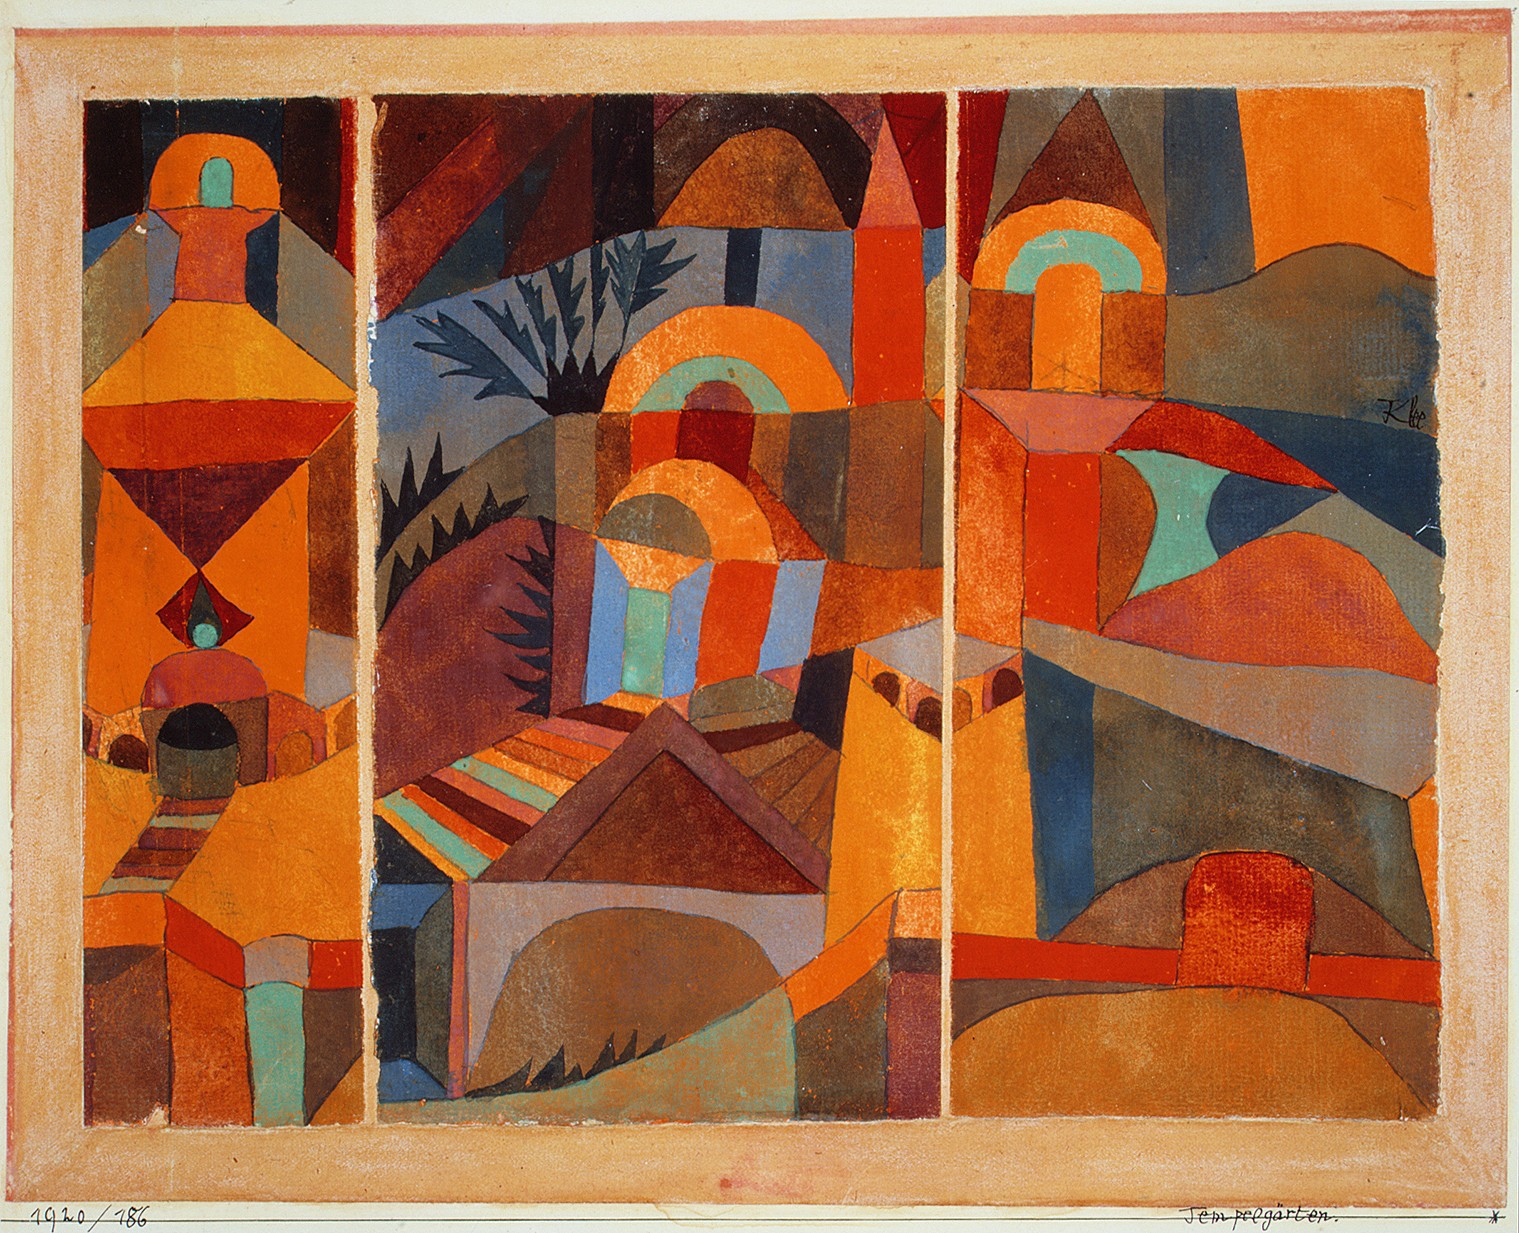 The Life and Works of Klee